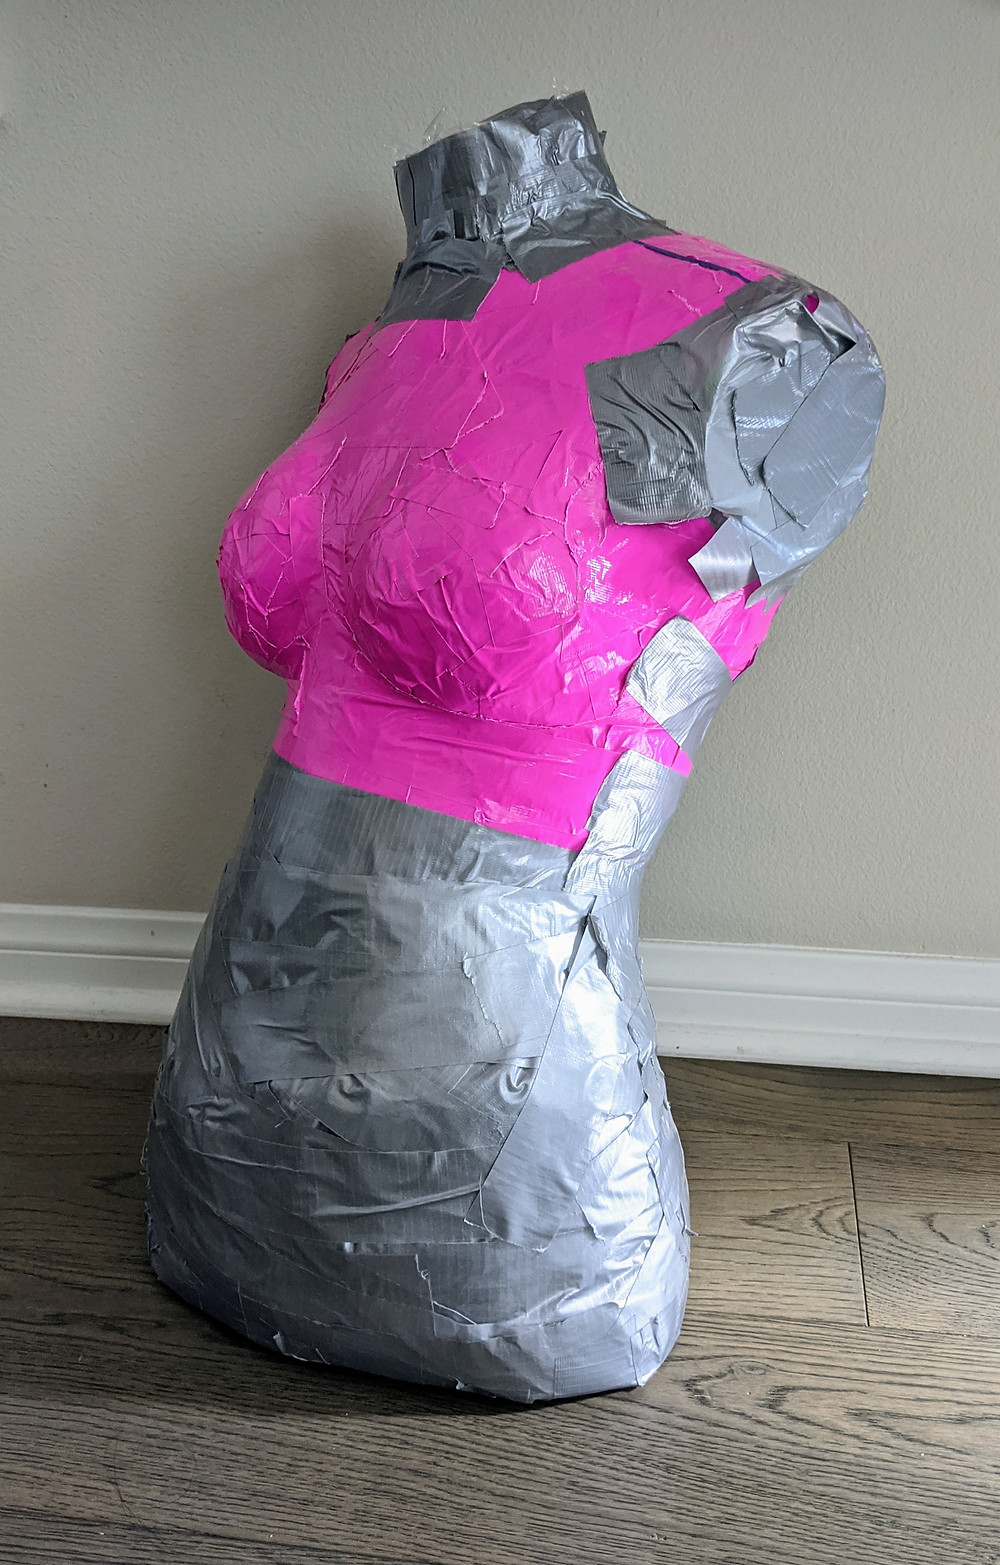 diy-dress-form-duct-tape